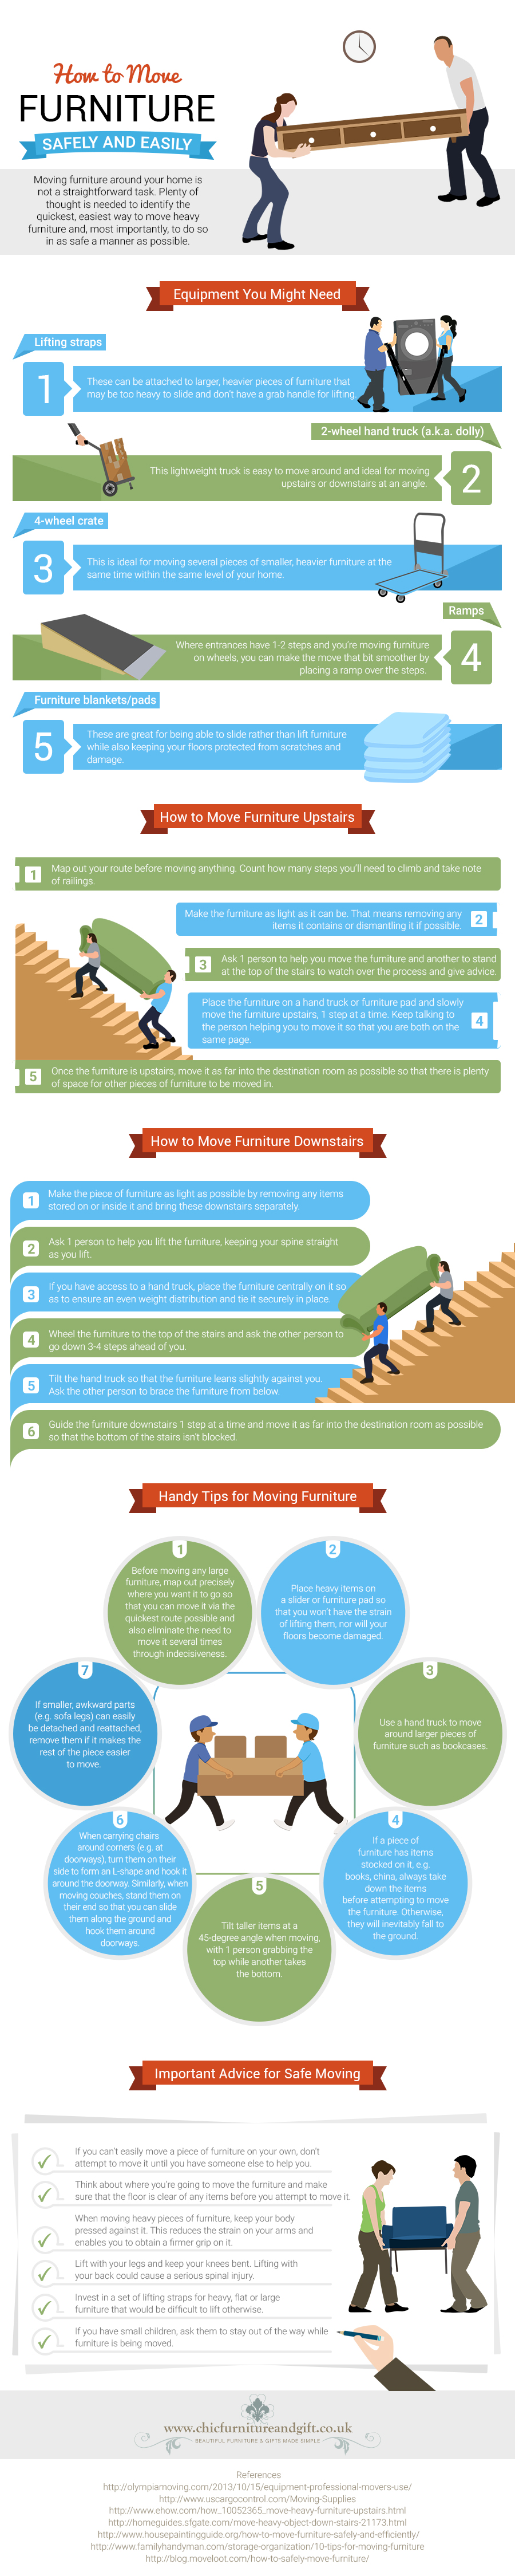 How to Safely Move Furniture – Infographic